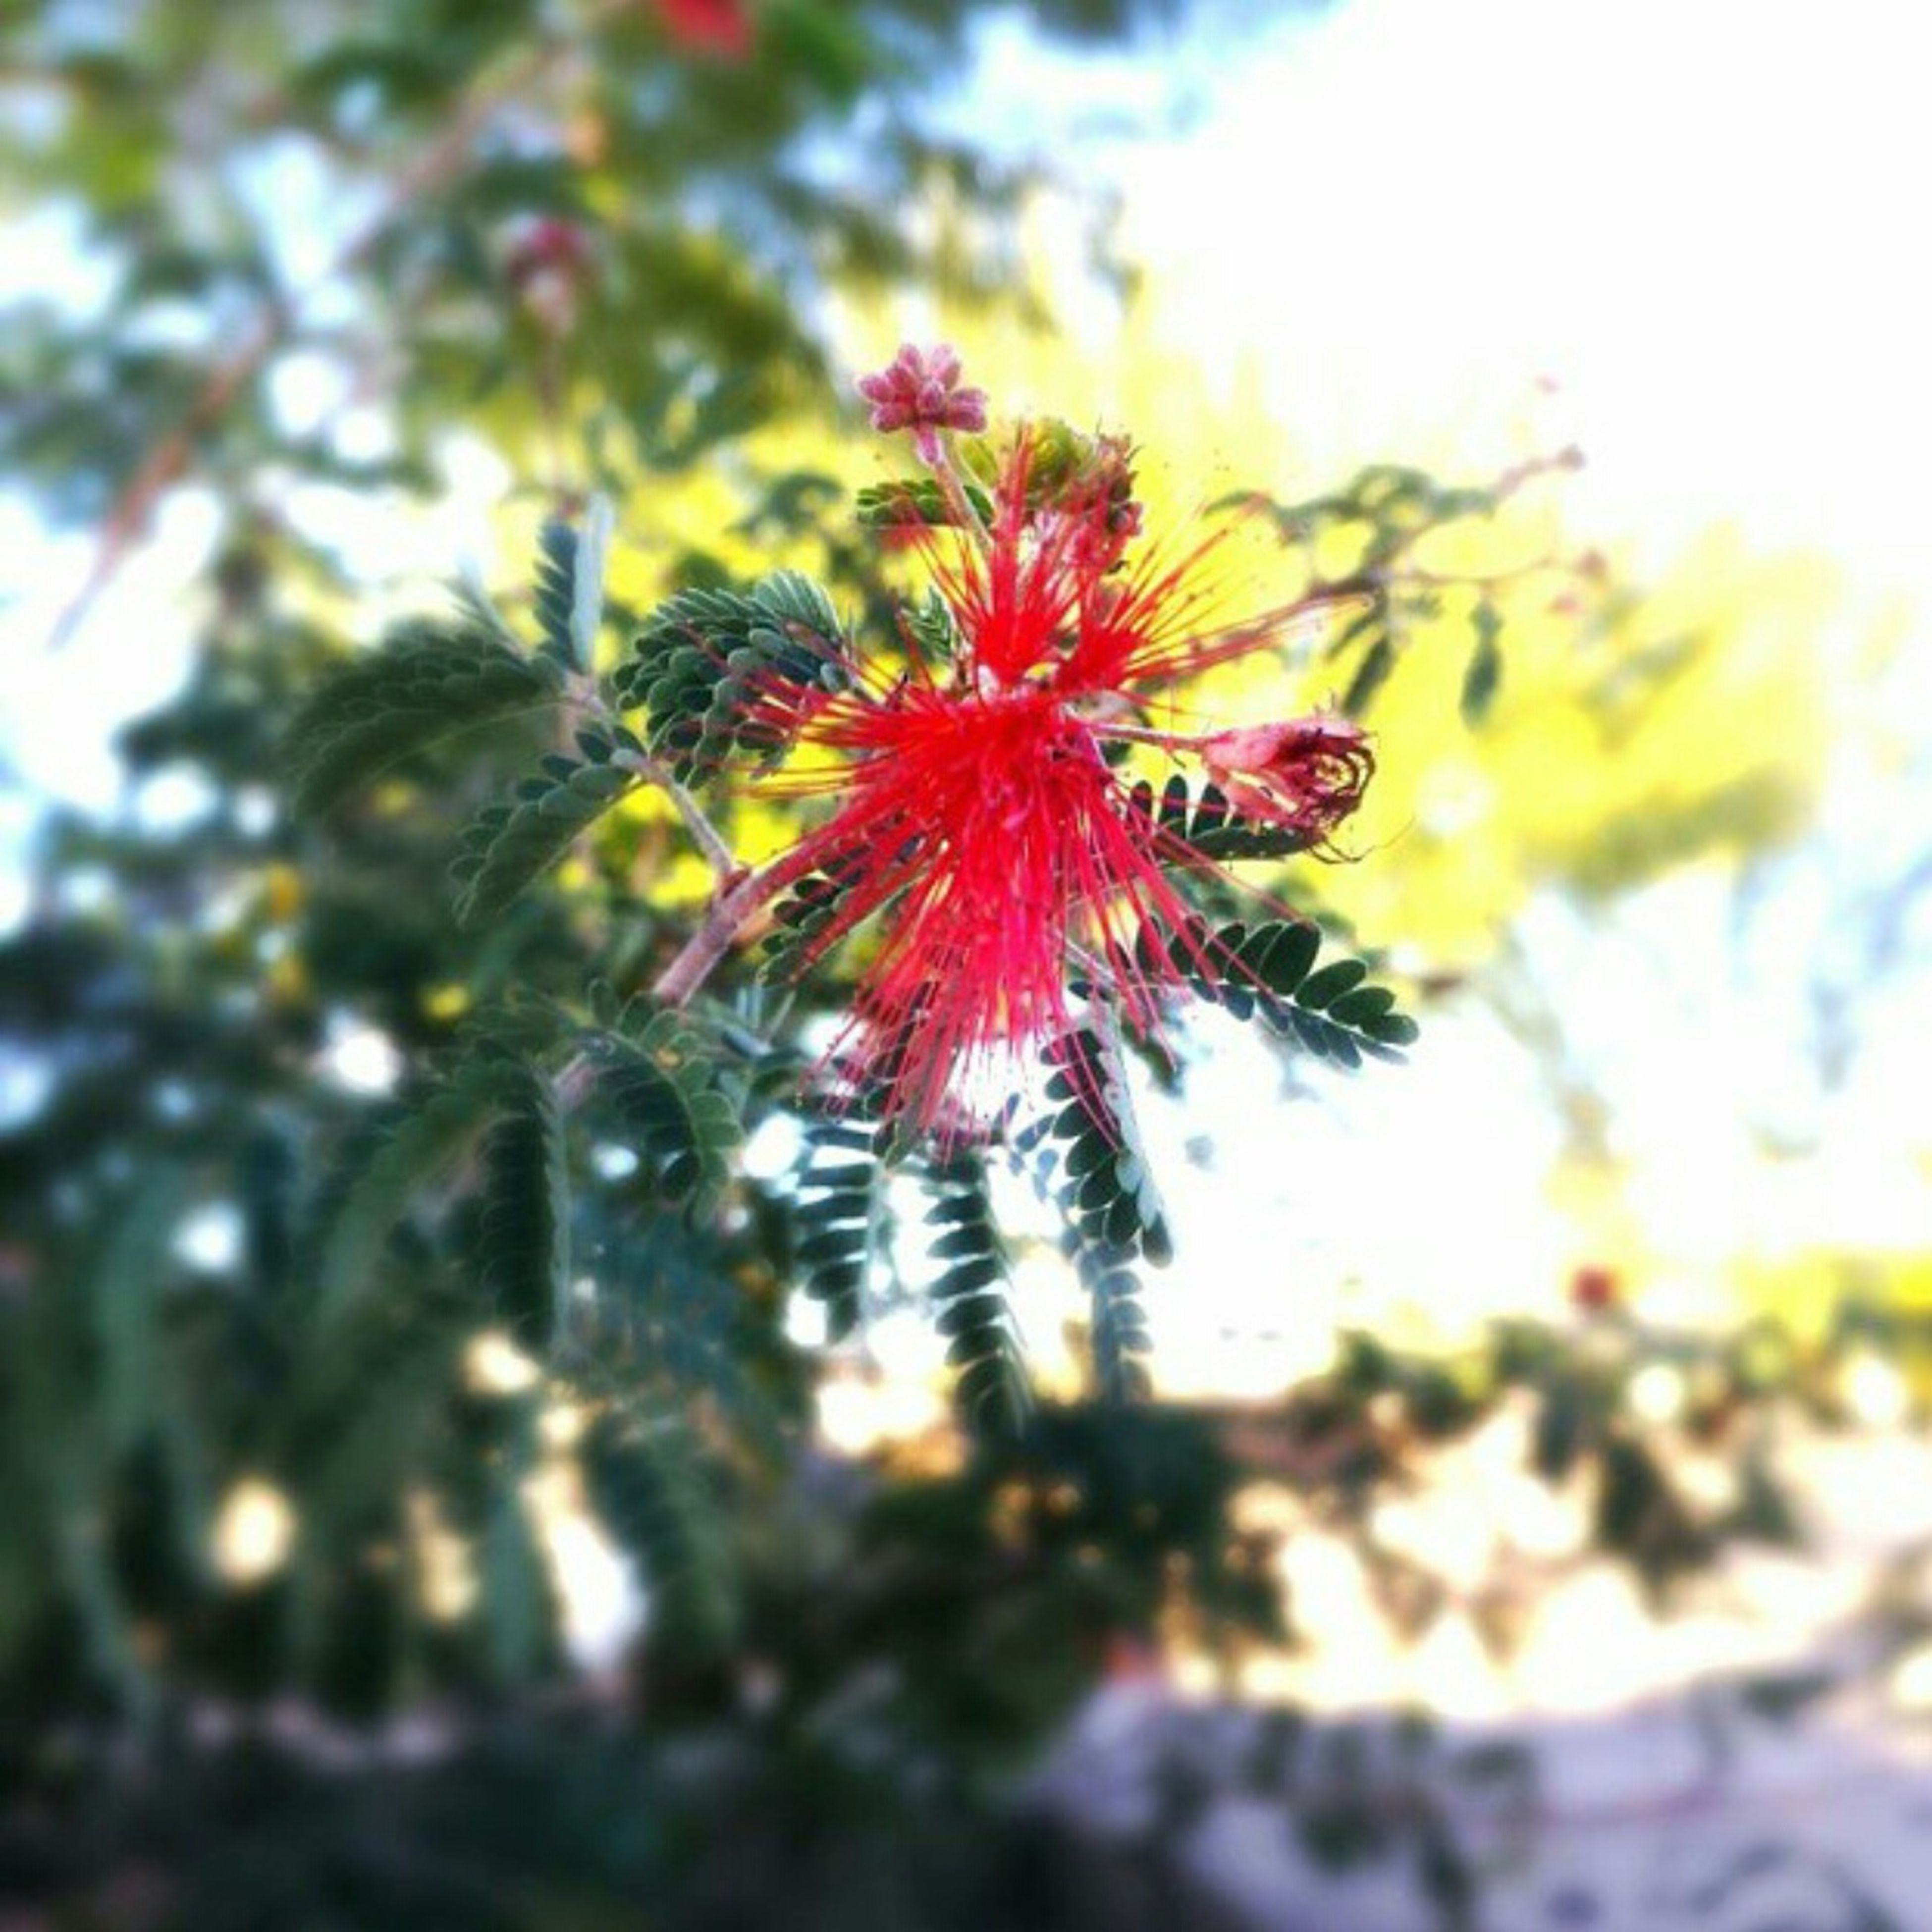 flower, growth, freshness, fragility, focus on foreground, beauty in nature, nature, close-up, petal, low angle view, plant, tree, flower head, selective focus, red, sky, blooming, day, sunlight, outdoors